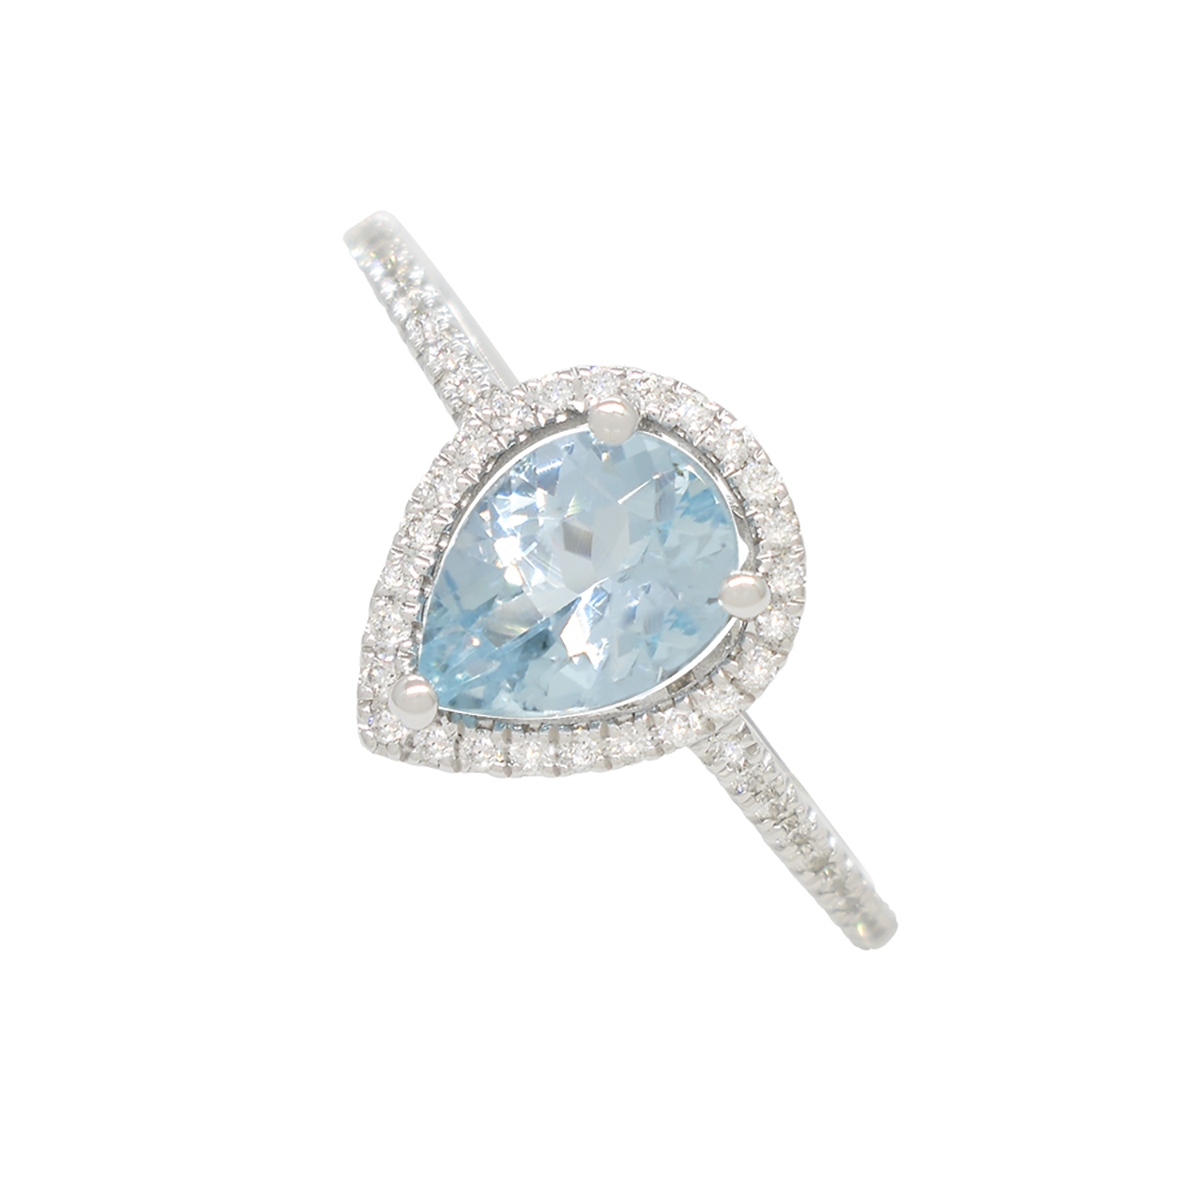 pear-shape-aquamarine-ring-with-round-diamonds-in-white-gold